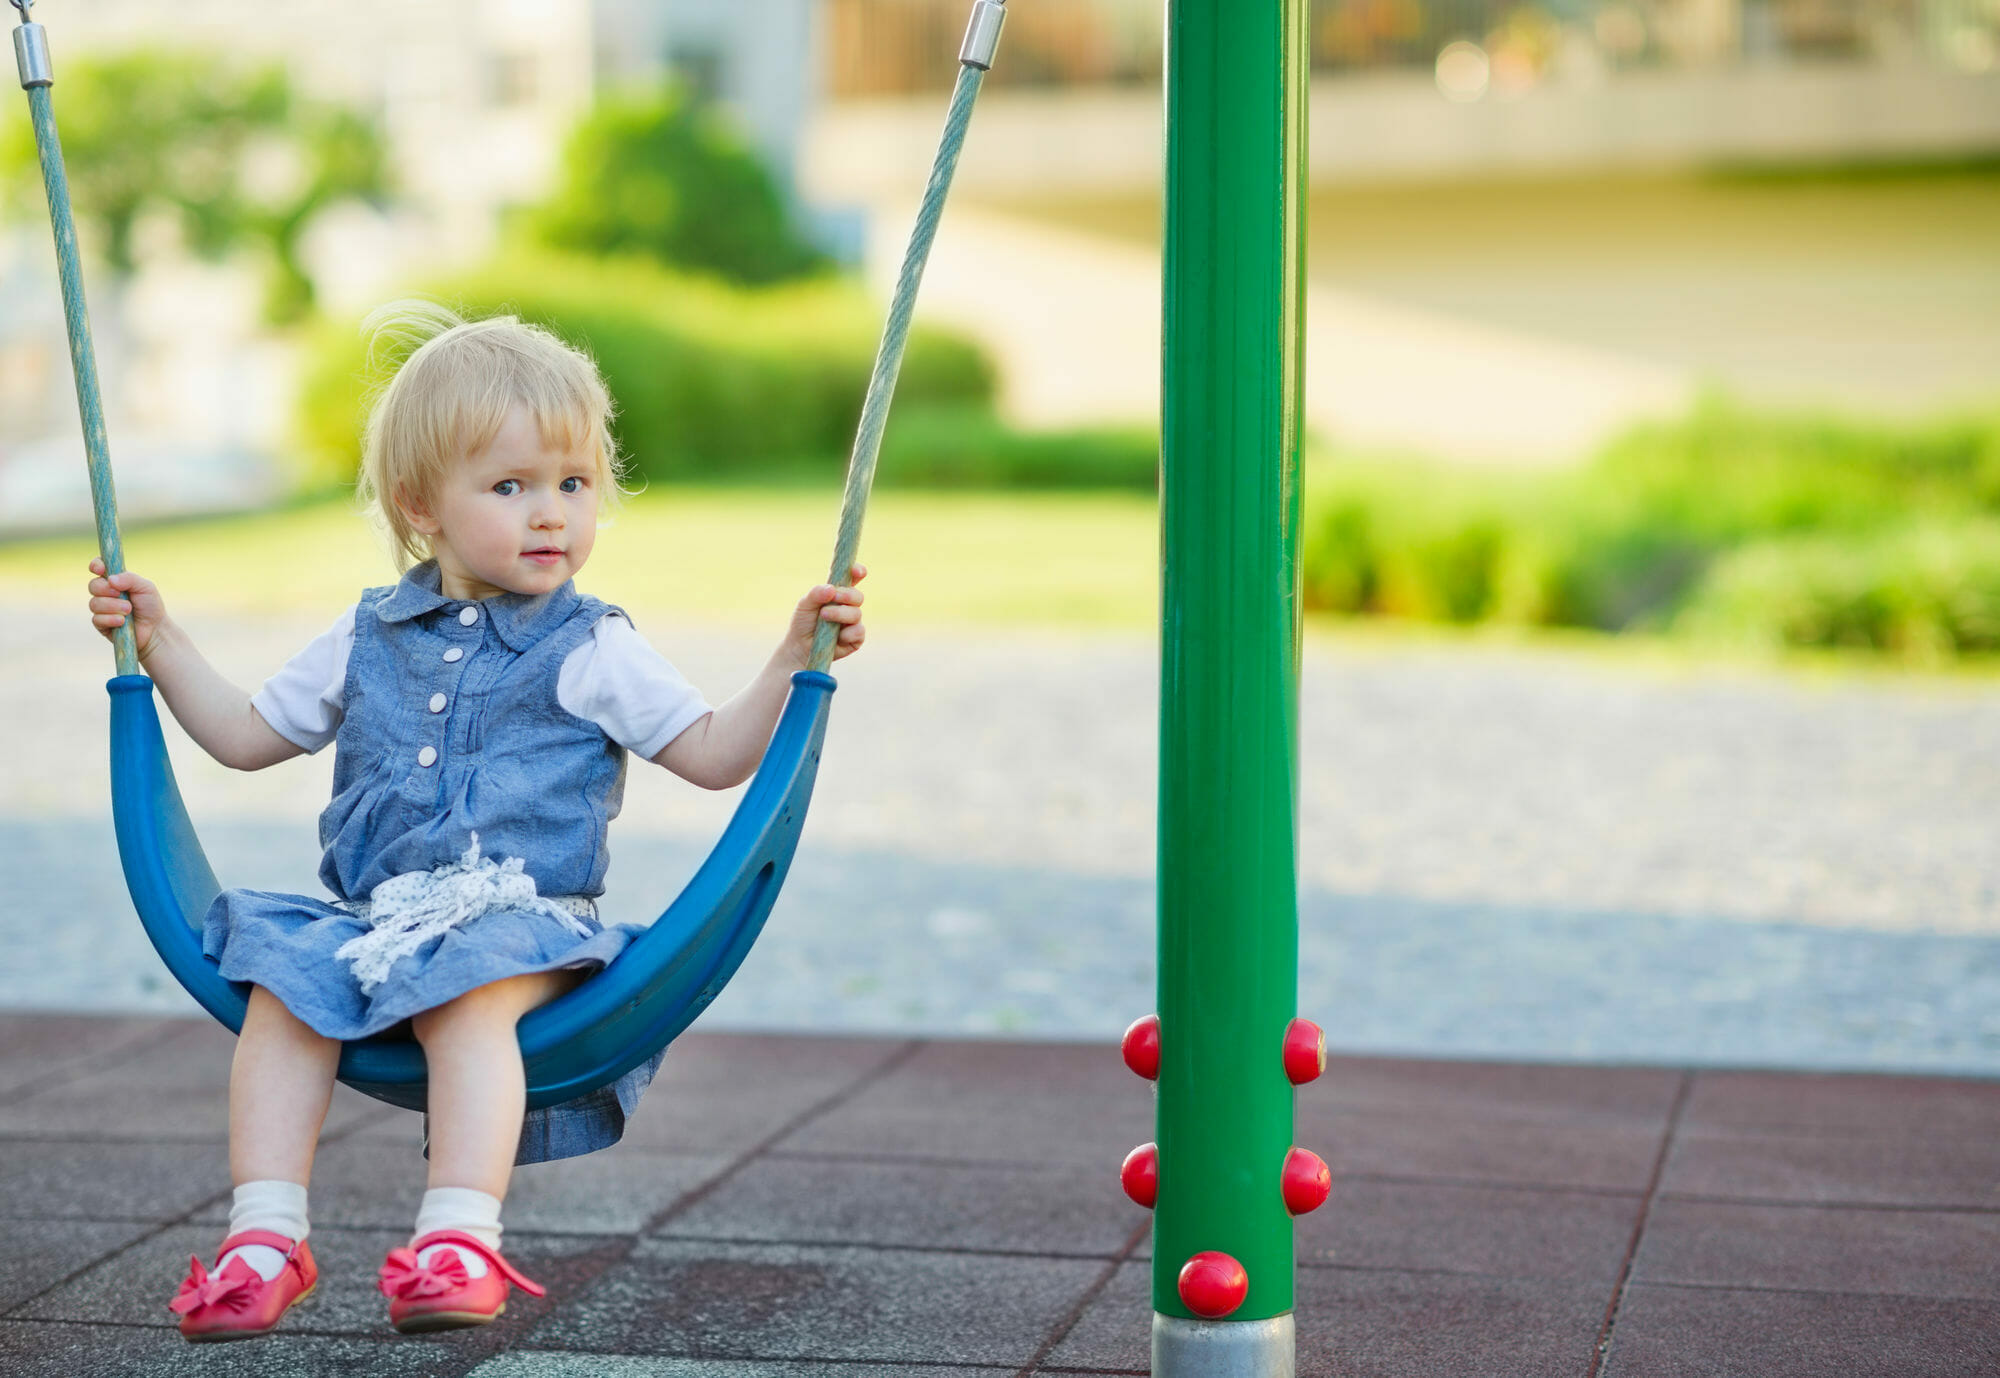 Baby Swinging On Swing On Playground Side View